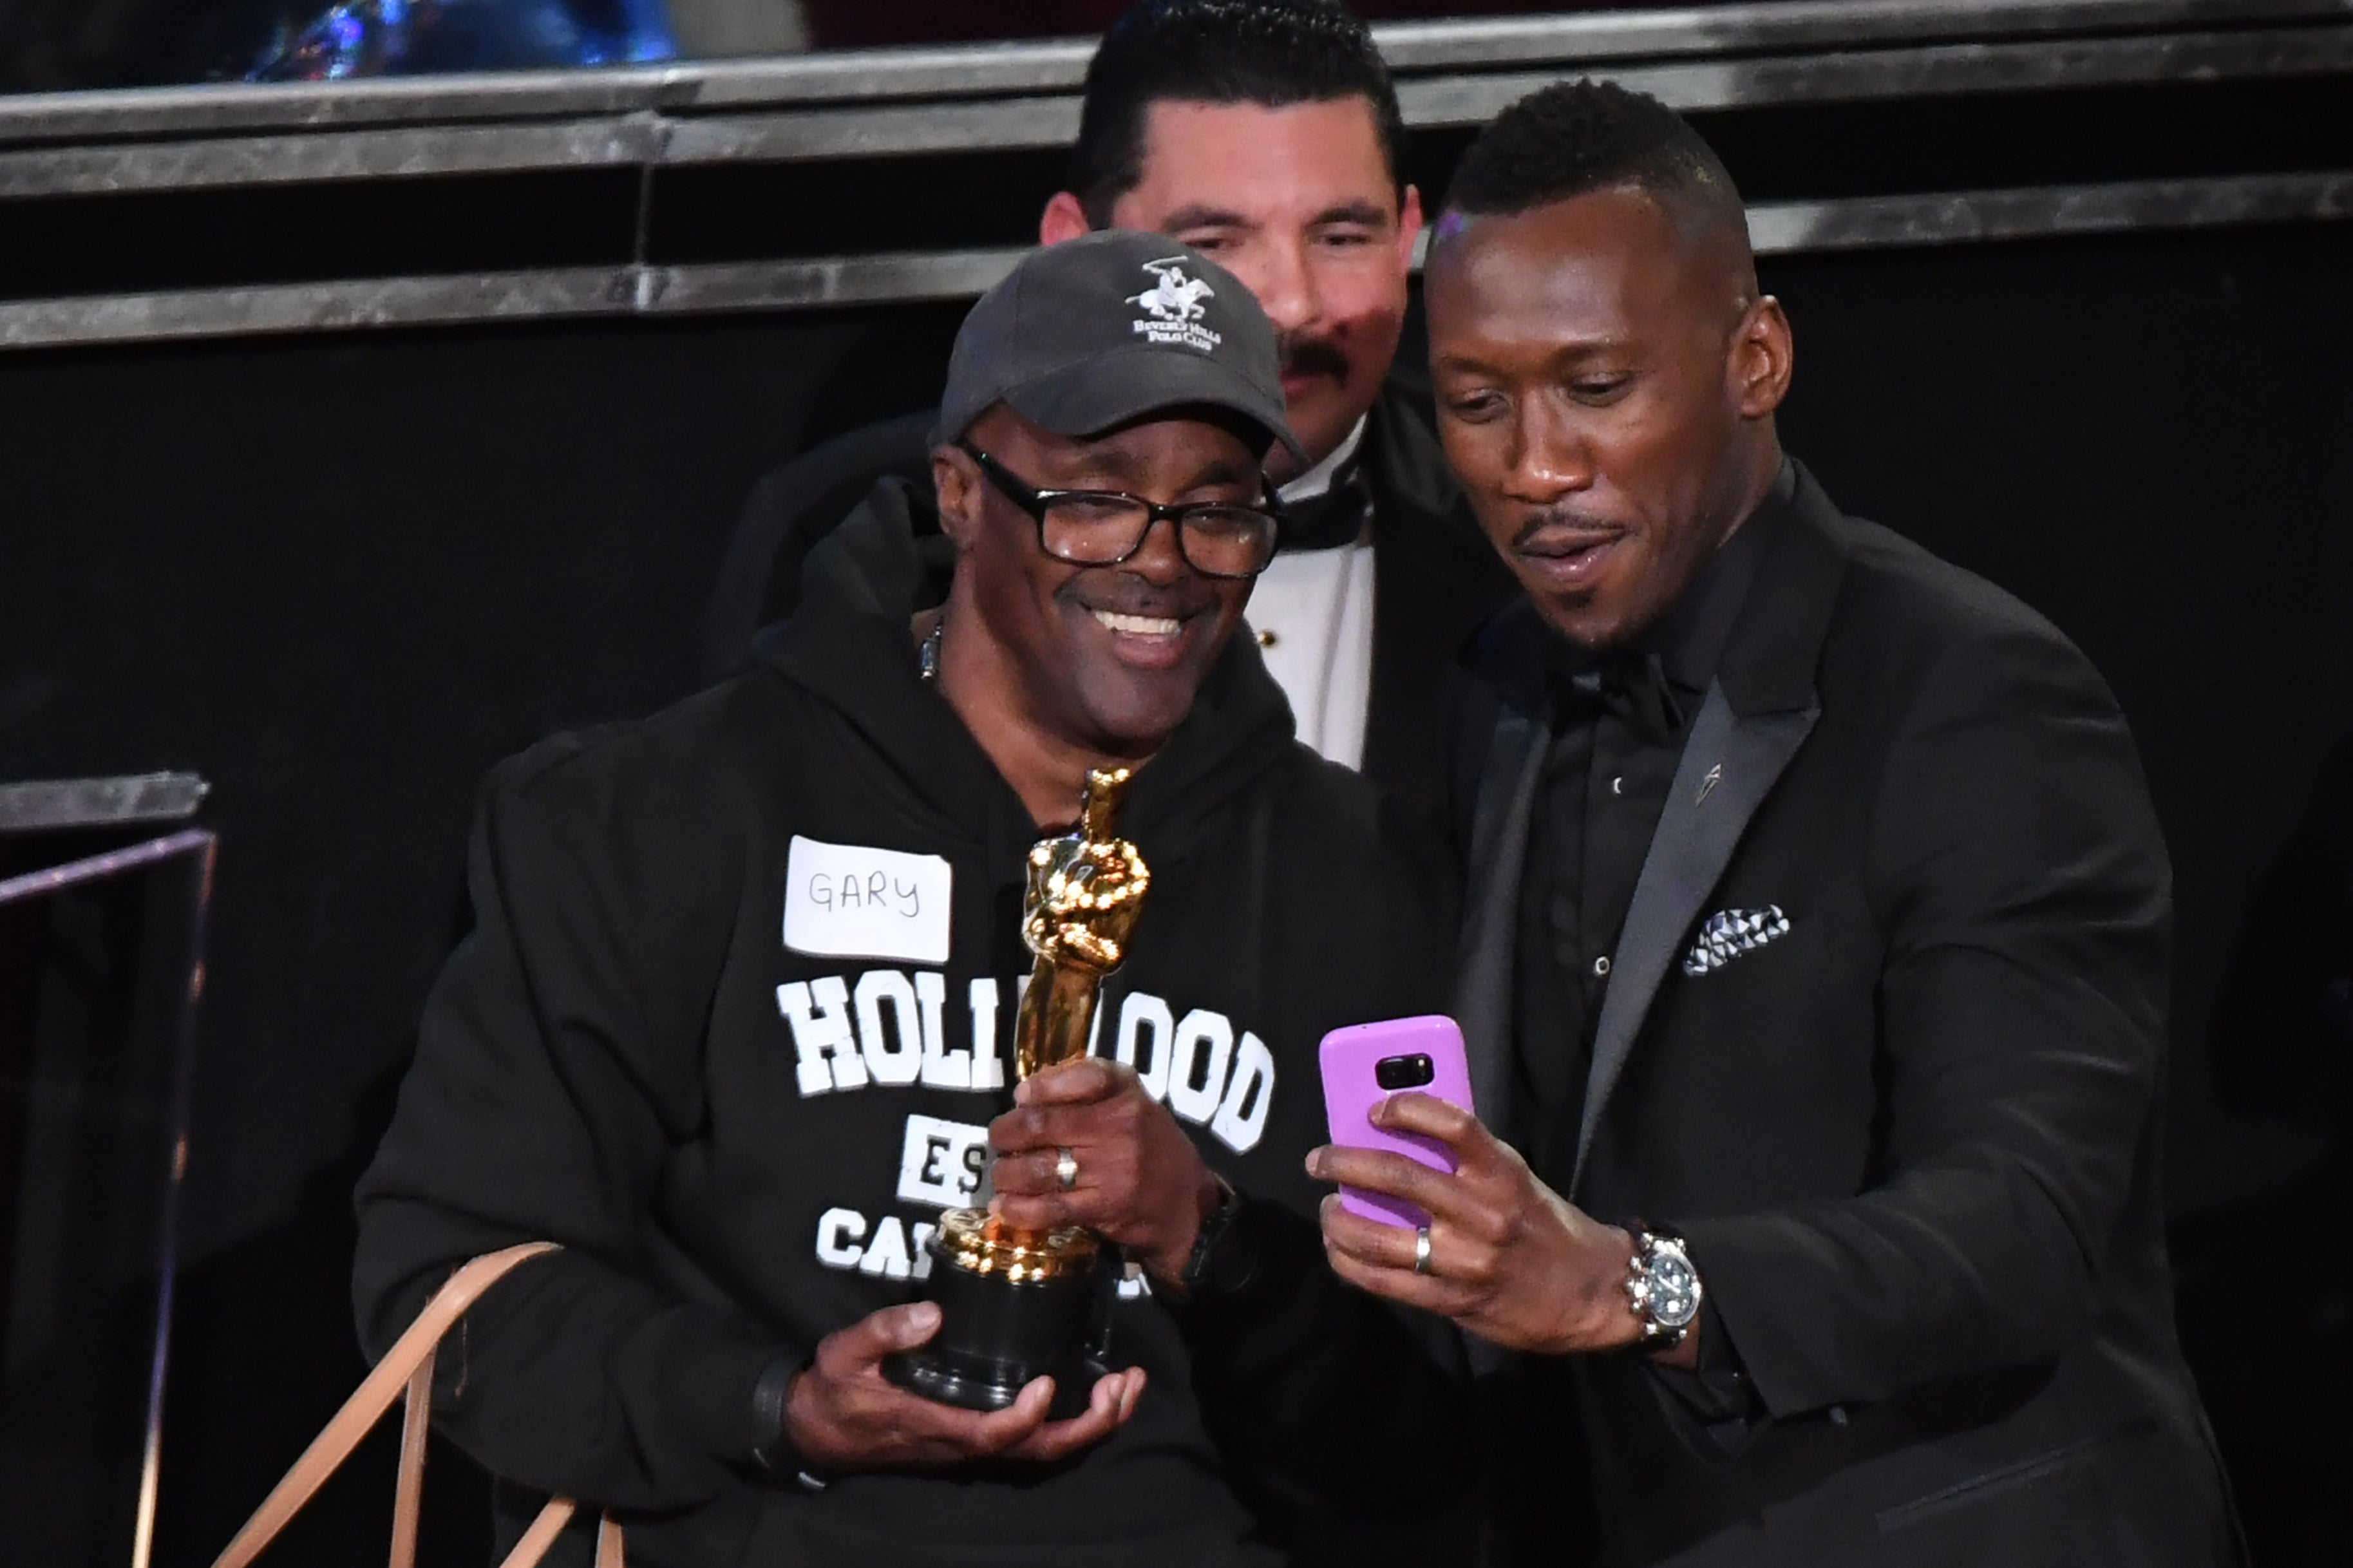 To Be Honest, Gary From Chicago Was The Real Winner Of Oscar Night 2017